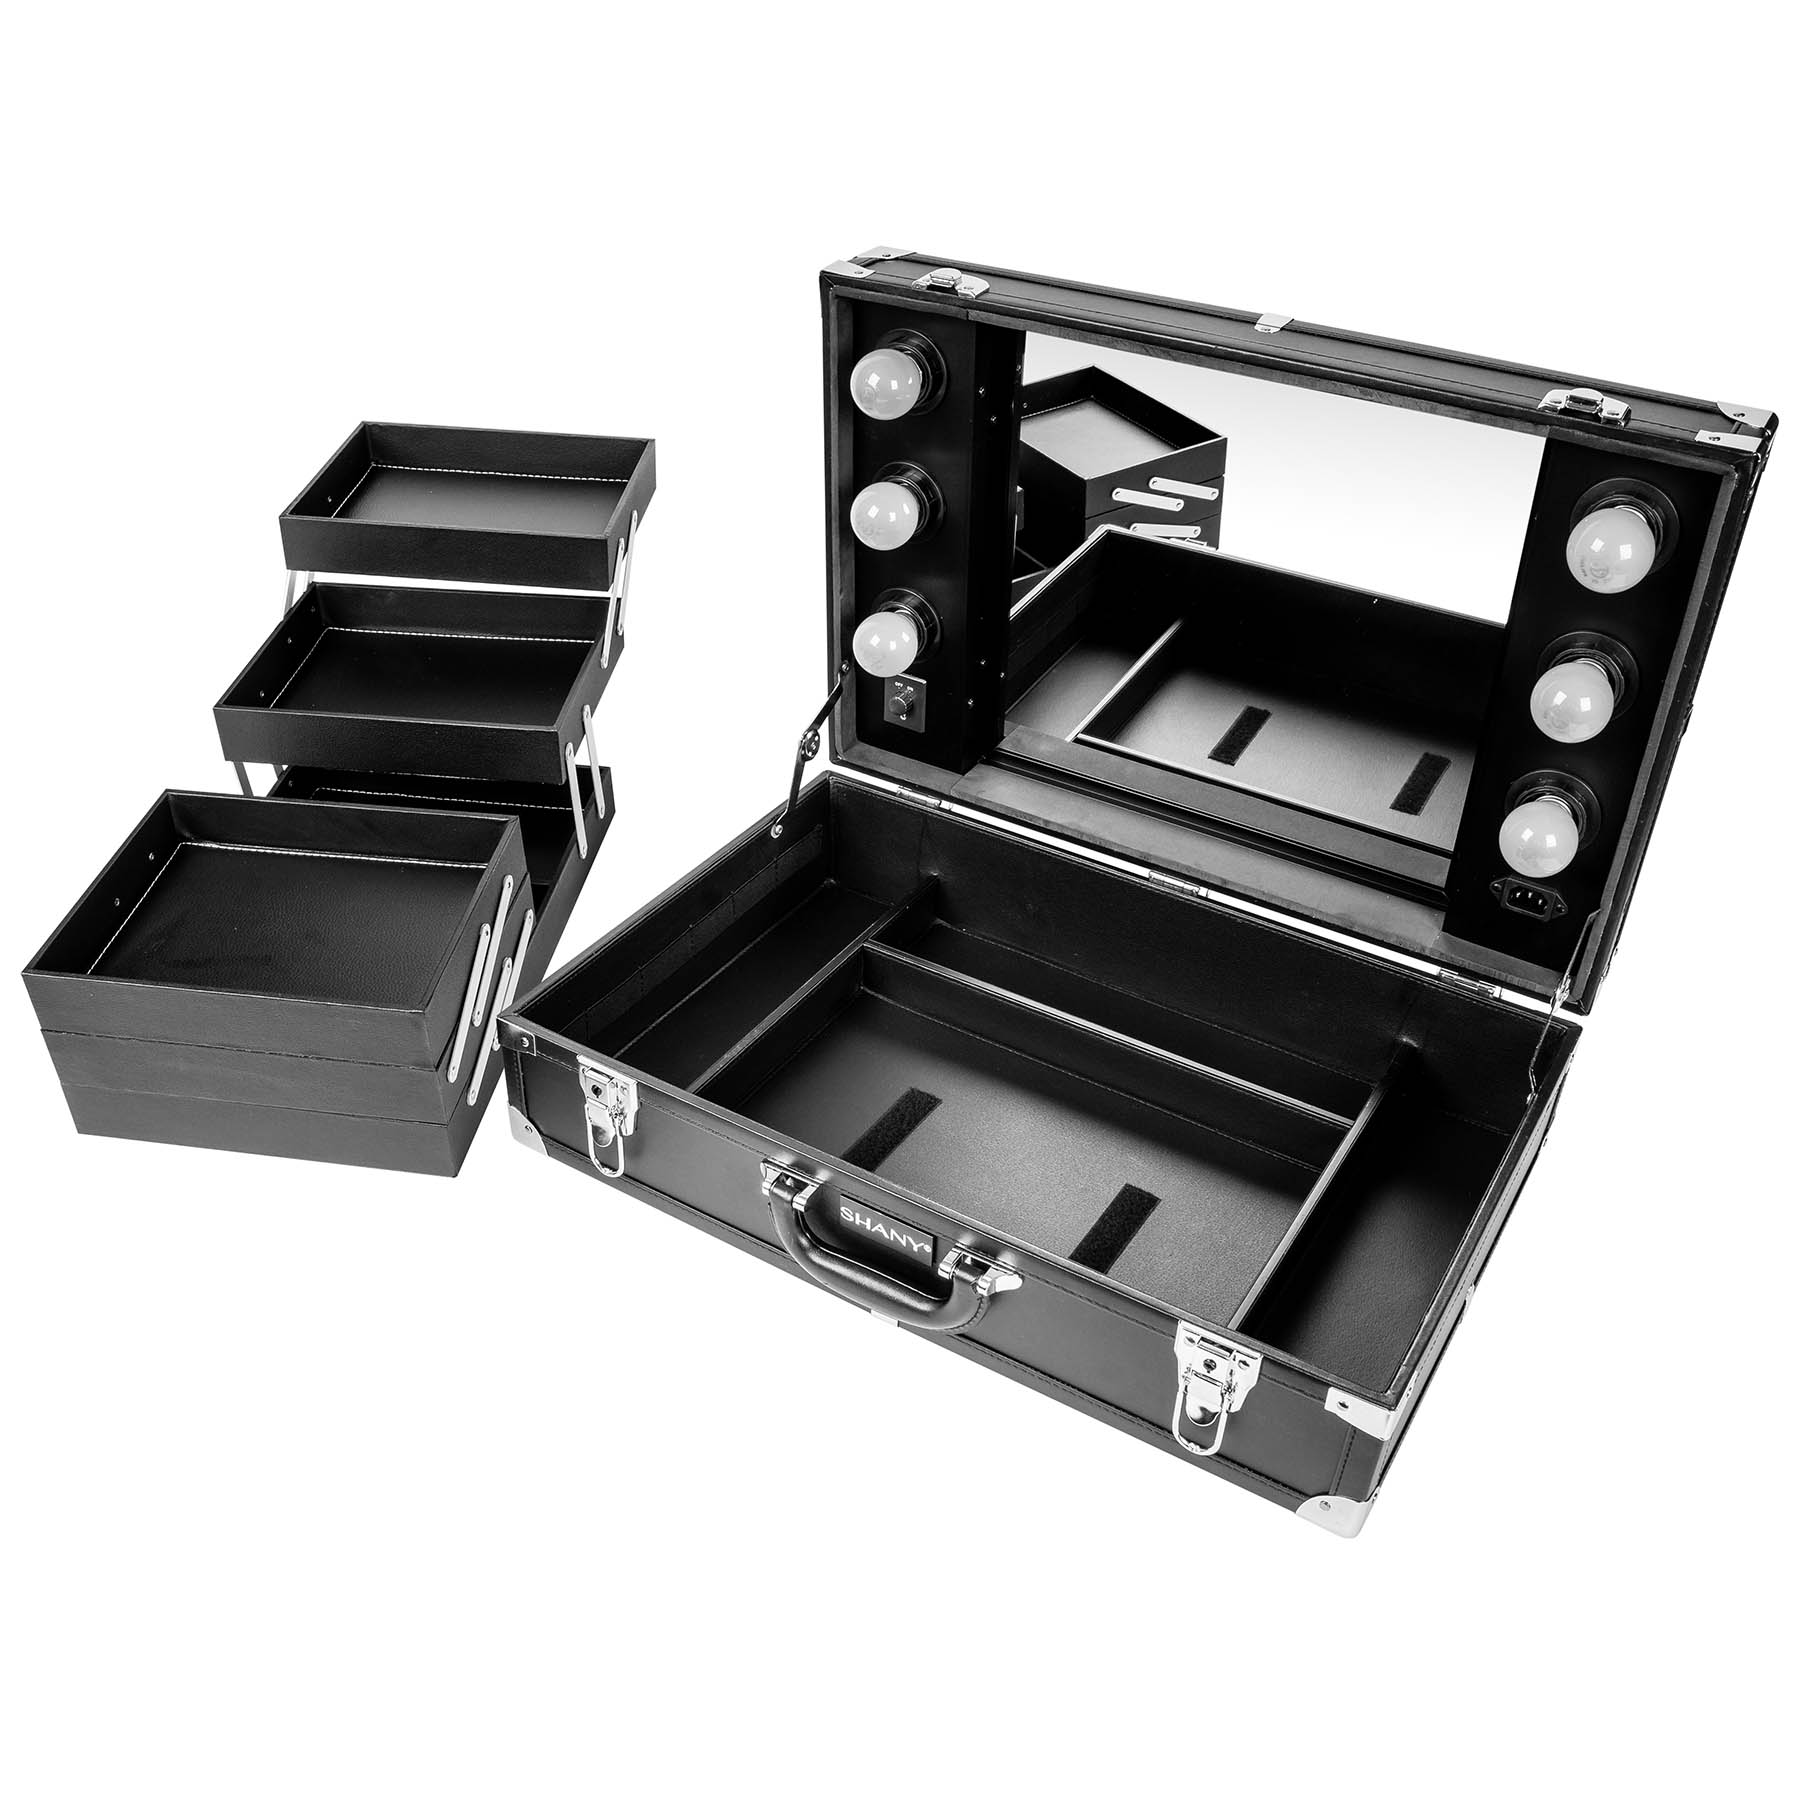 SHANY-Studio-To-Go-Tabletop-Mirror-Makeup-Station-with-Dimmable-Lights miniature 9